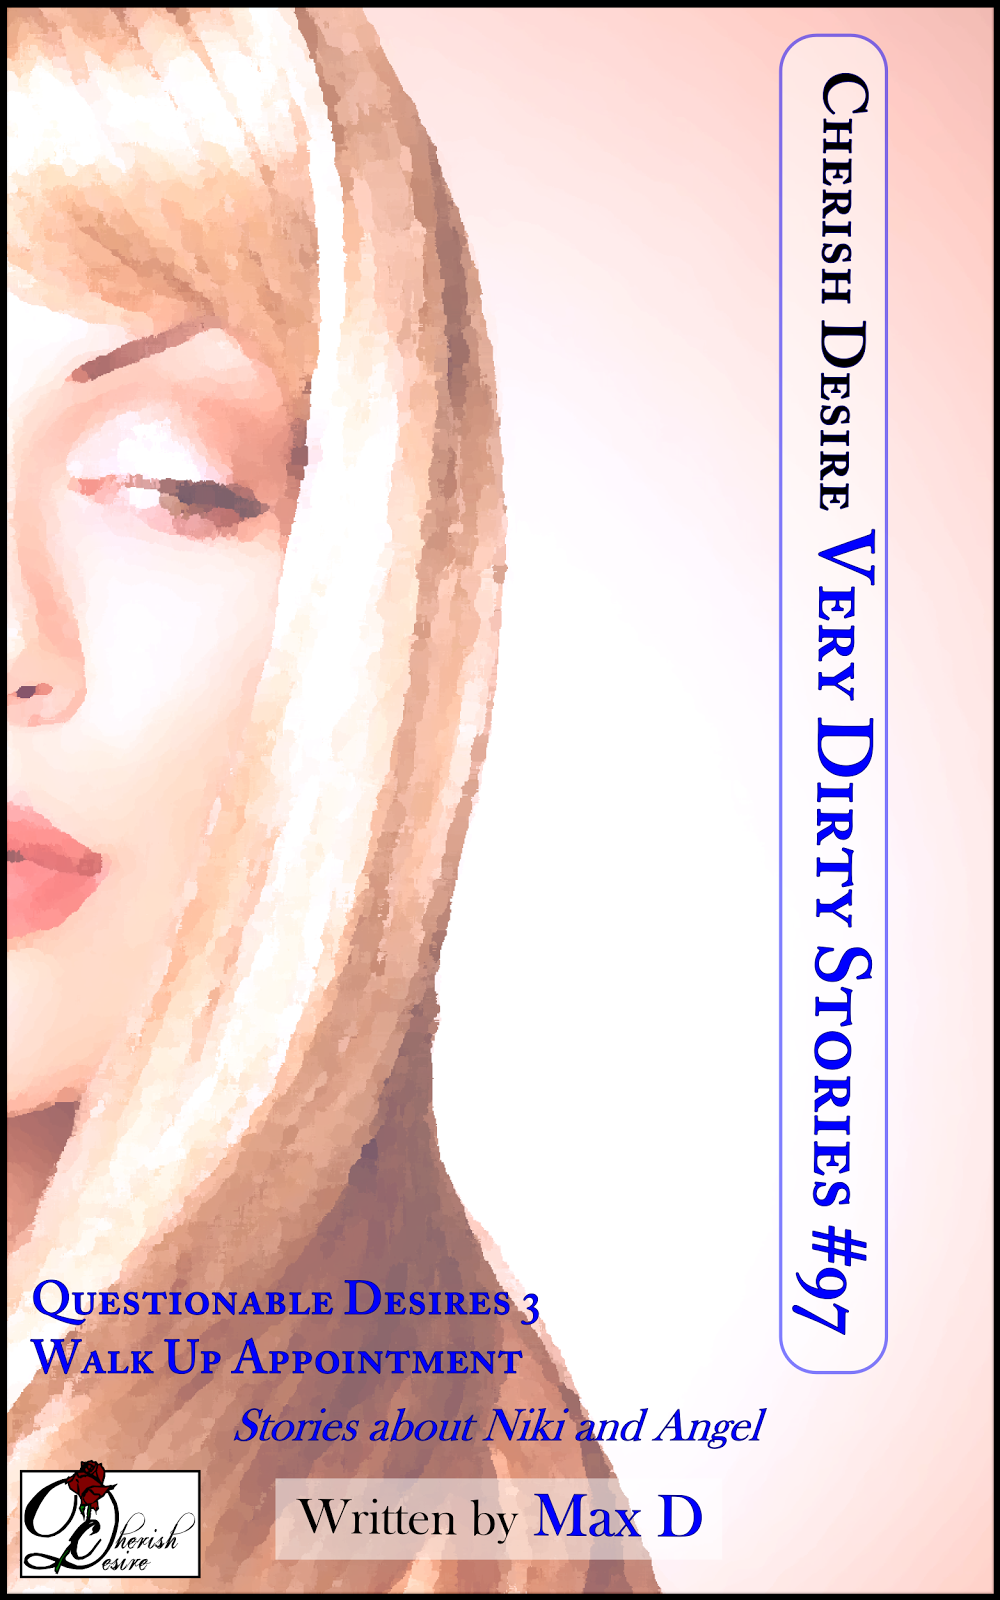 Cherish Desire: Very Dirty Stories #97, Max D, erotica